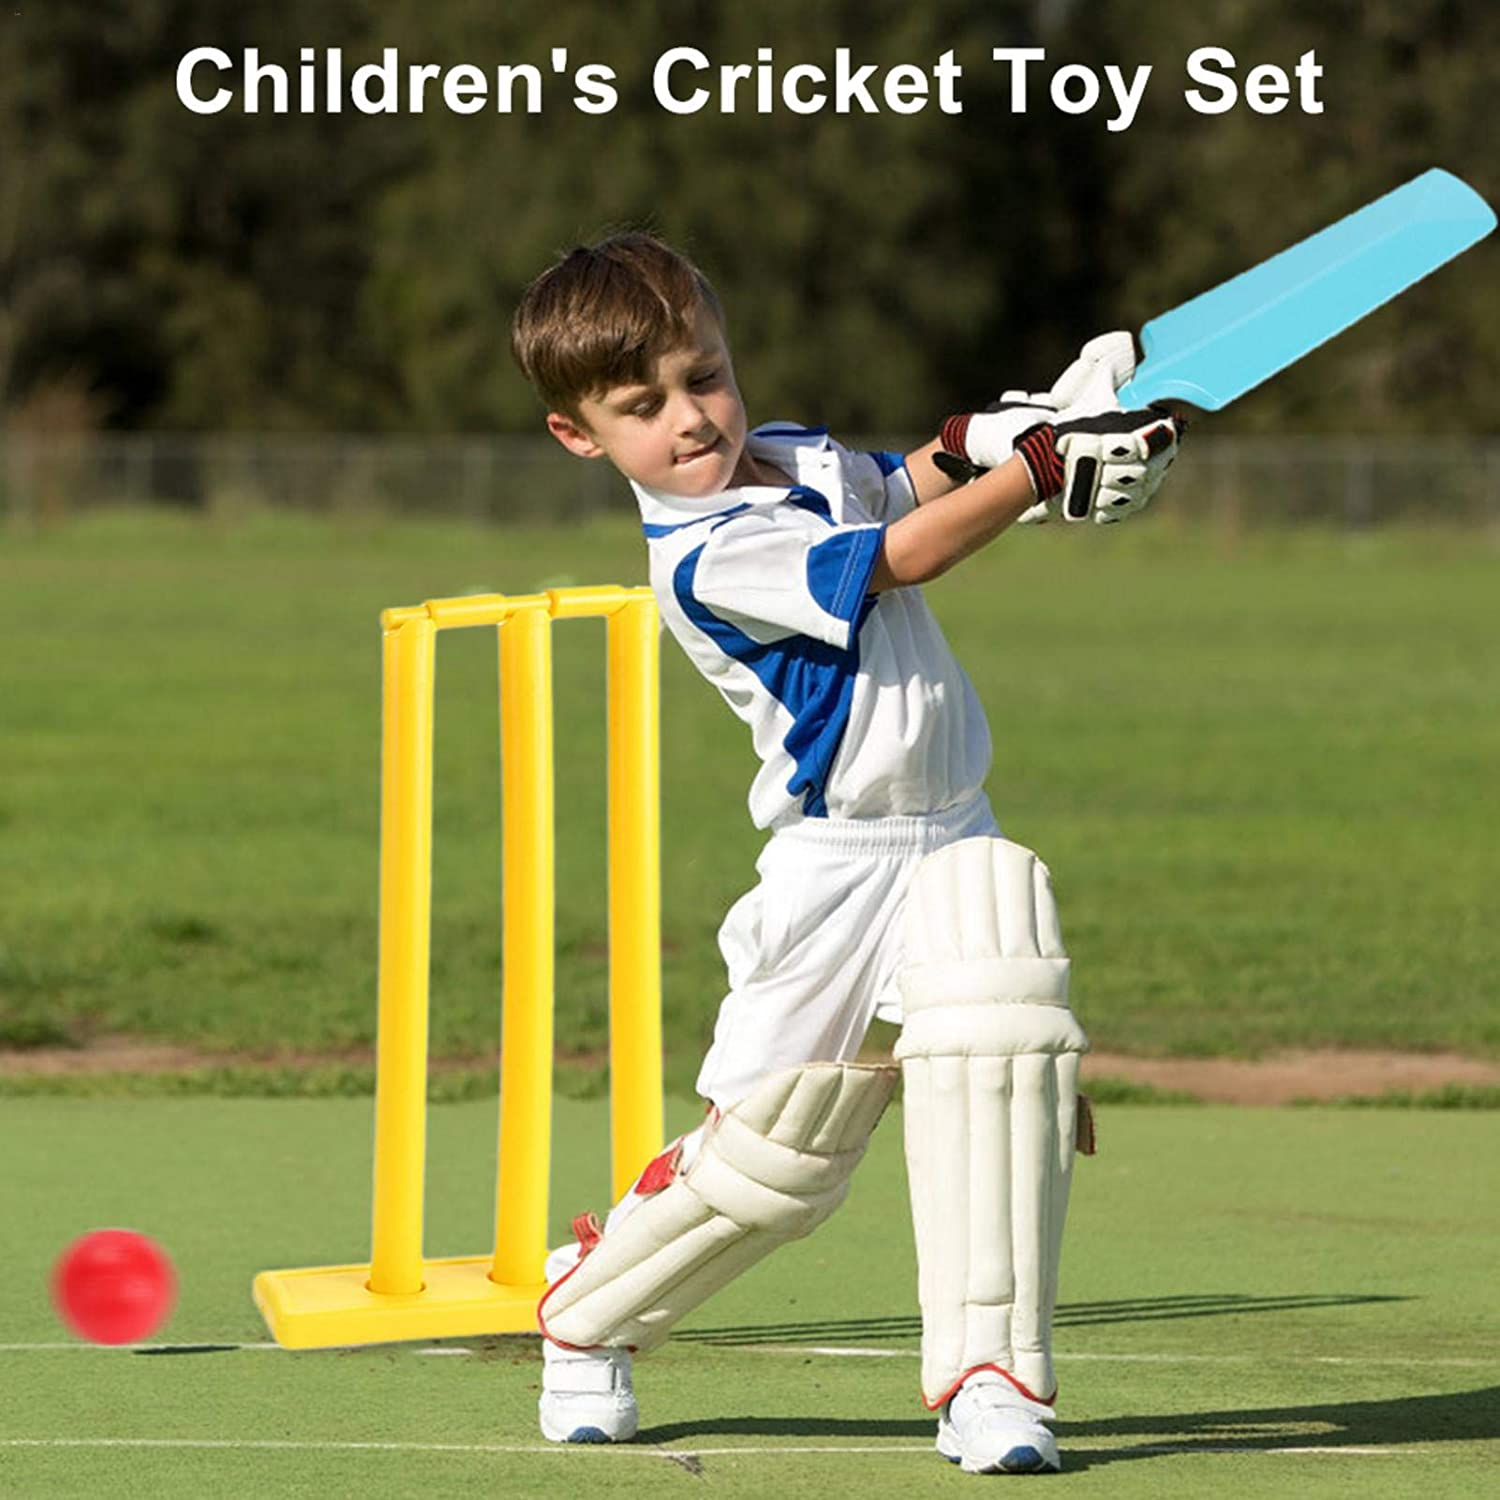 Kids Cricket Set Cricket Toy Set Hand-Eye Coordination Cultivation Sports Game Set Cricket Bat and Ball Beach Wicket Stand Kit